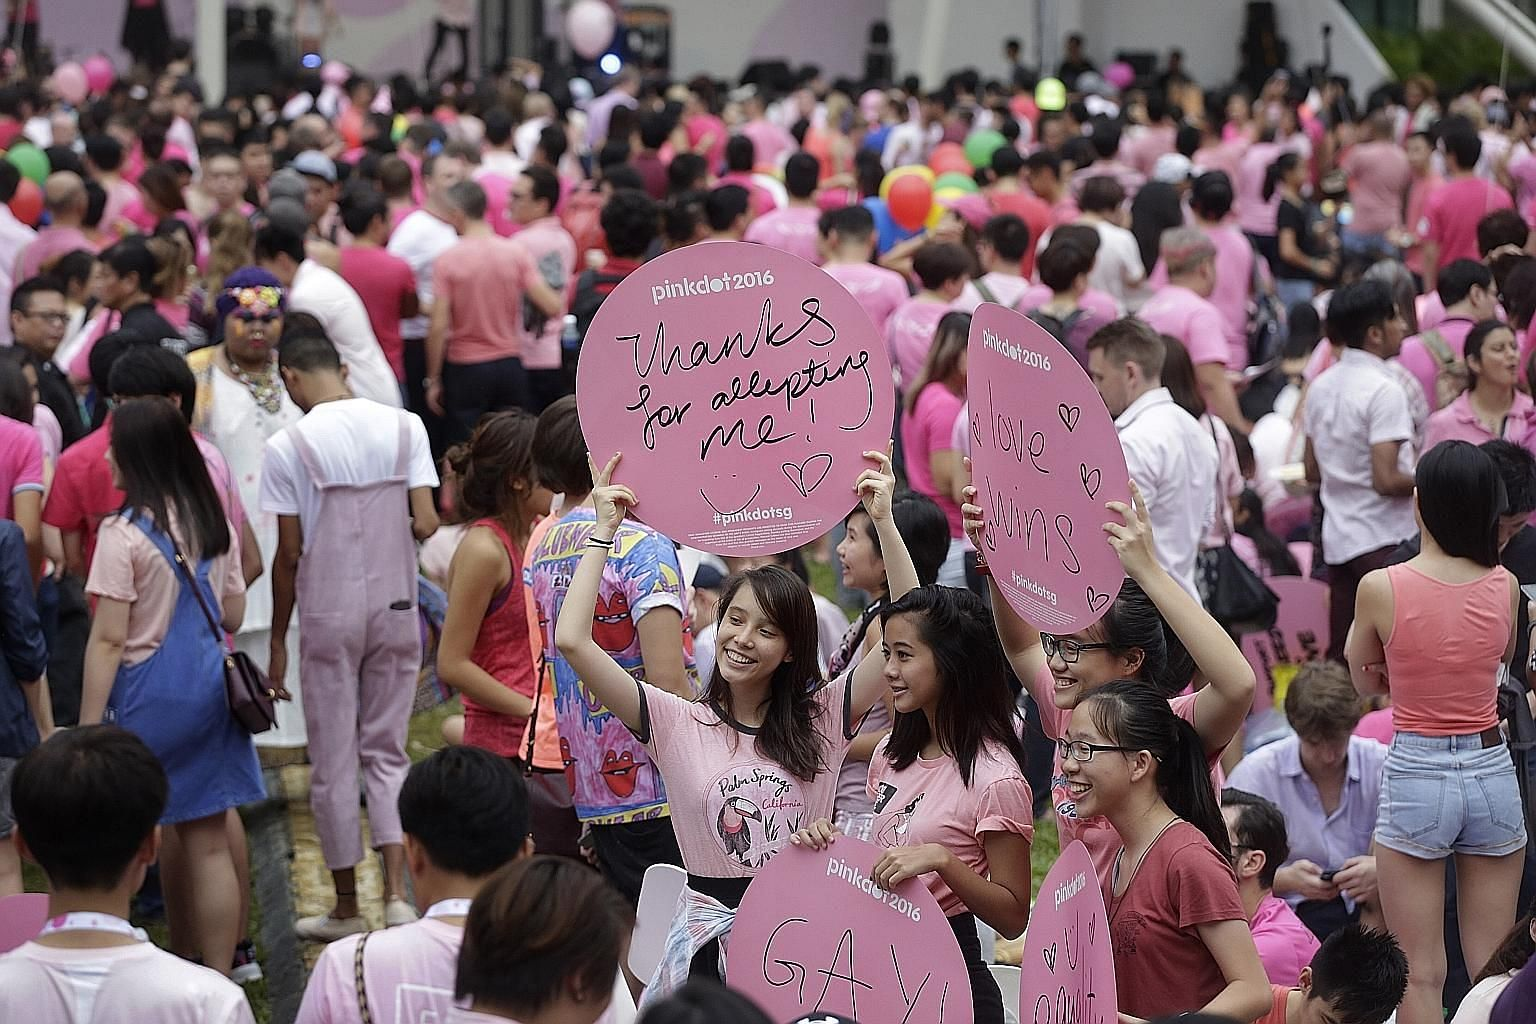 Participants during last Saturday's annual Pink Dot event at Speakers' Corner. This year's corporate sponsors included multinationals like Google as well as banks such as JP Morgan and Goldman Sachs.